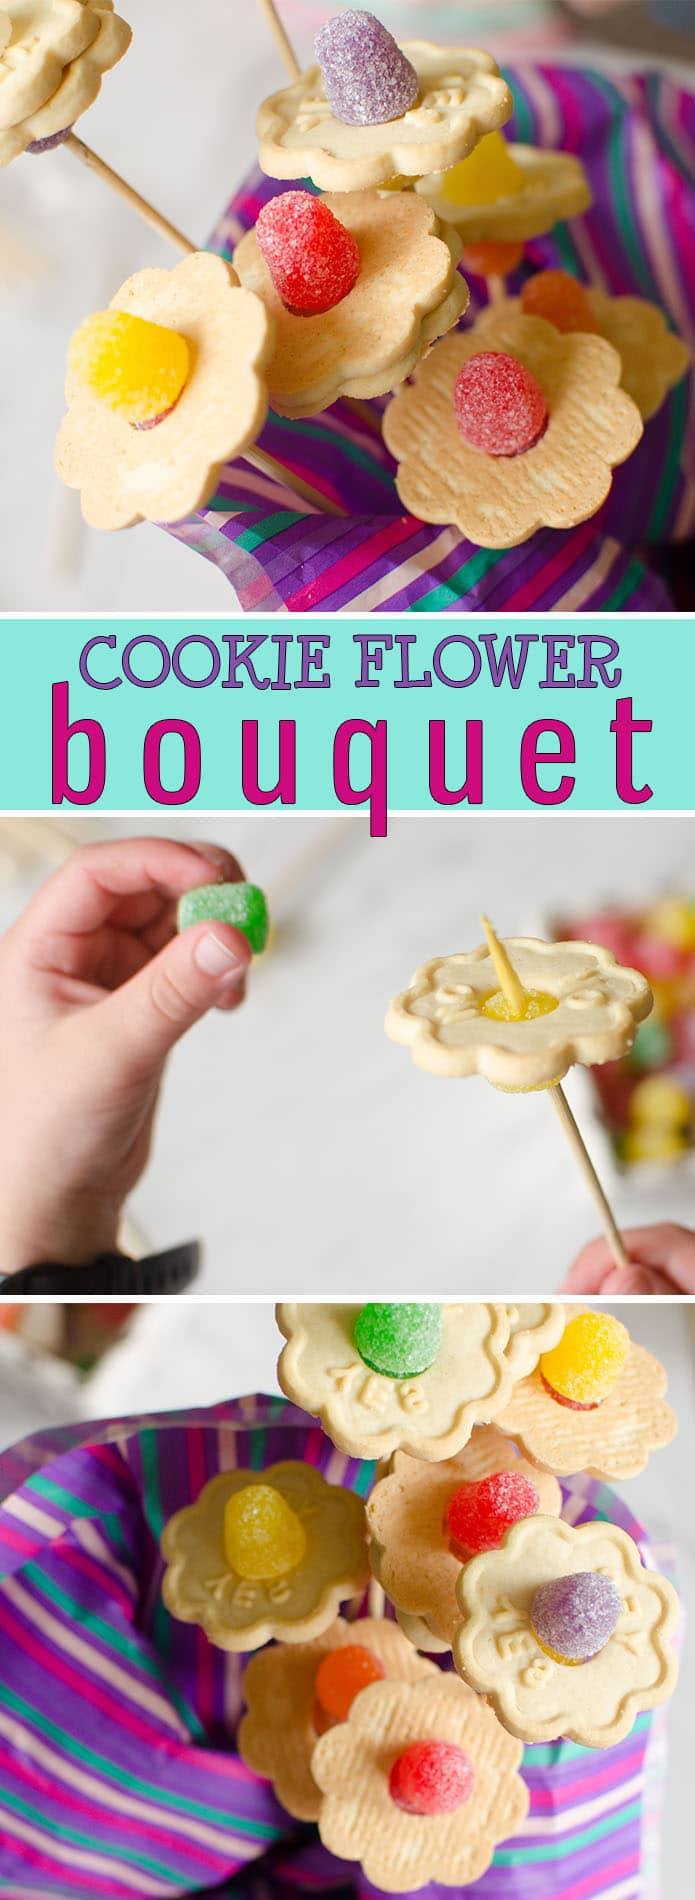 Cookie Flower Bouquet For Kids to Make for Mother\'s Day - Happy ...